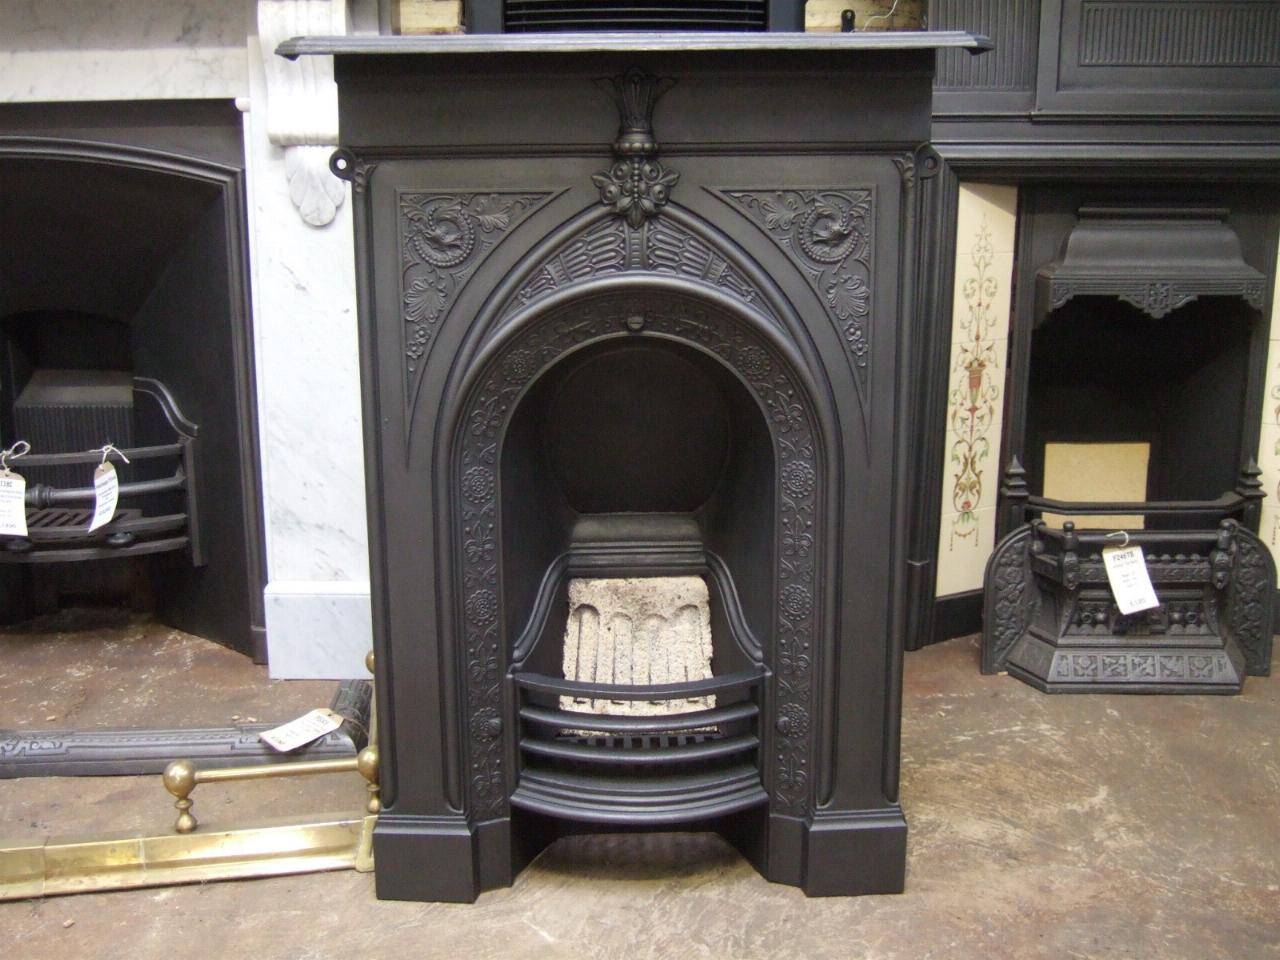 Bedroom Fireplace Heater Victorian Bedroom Fireplace 113b Old Fireplaces